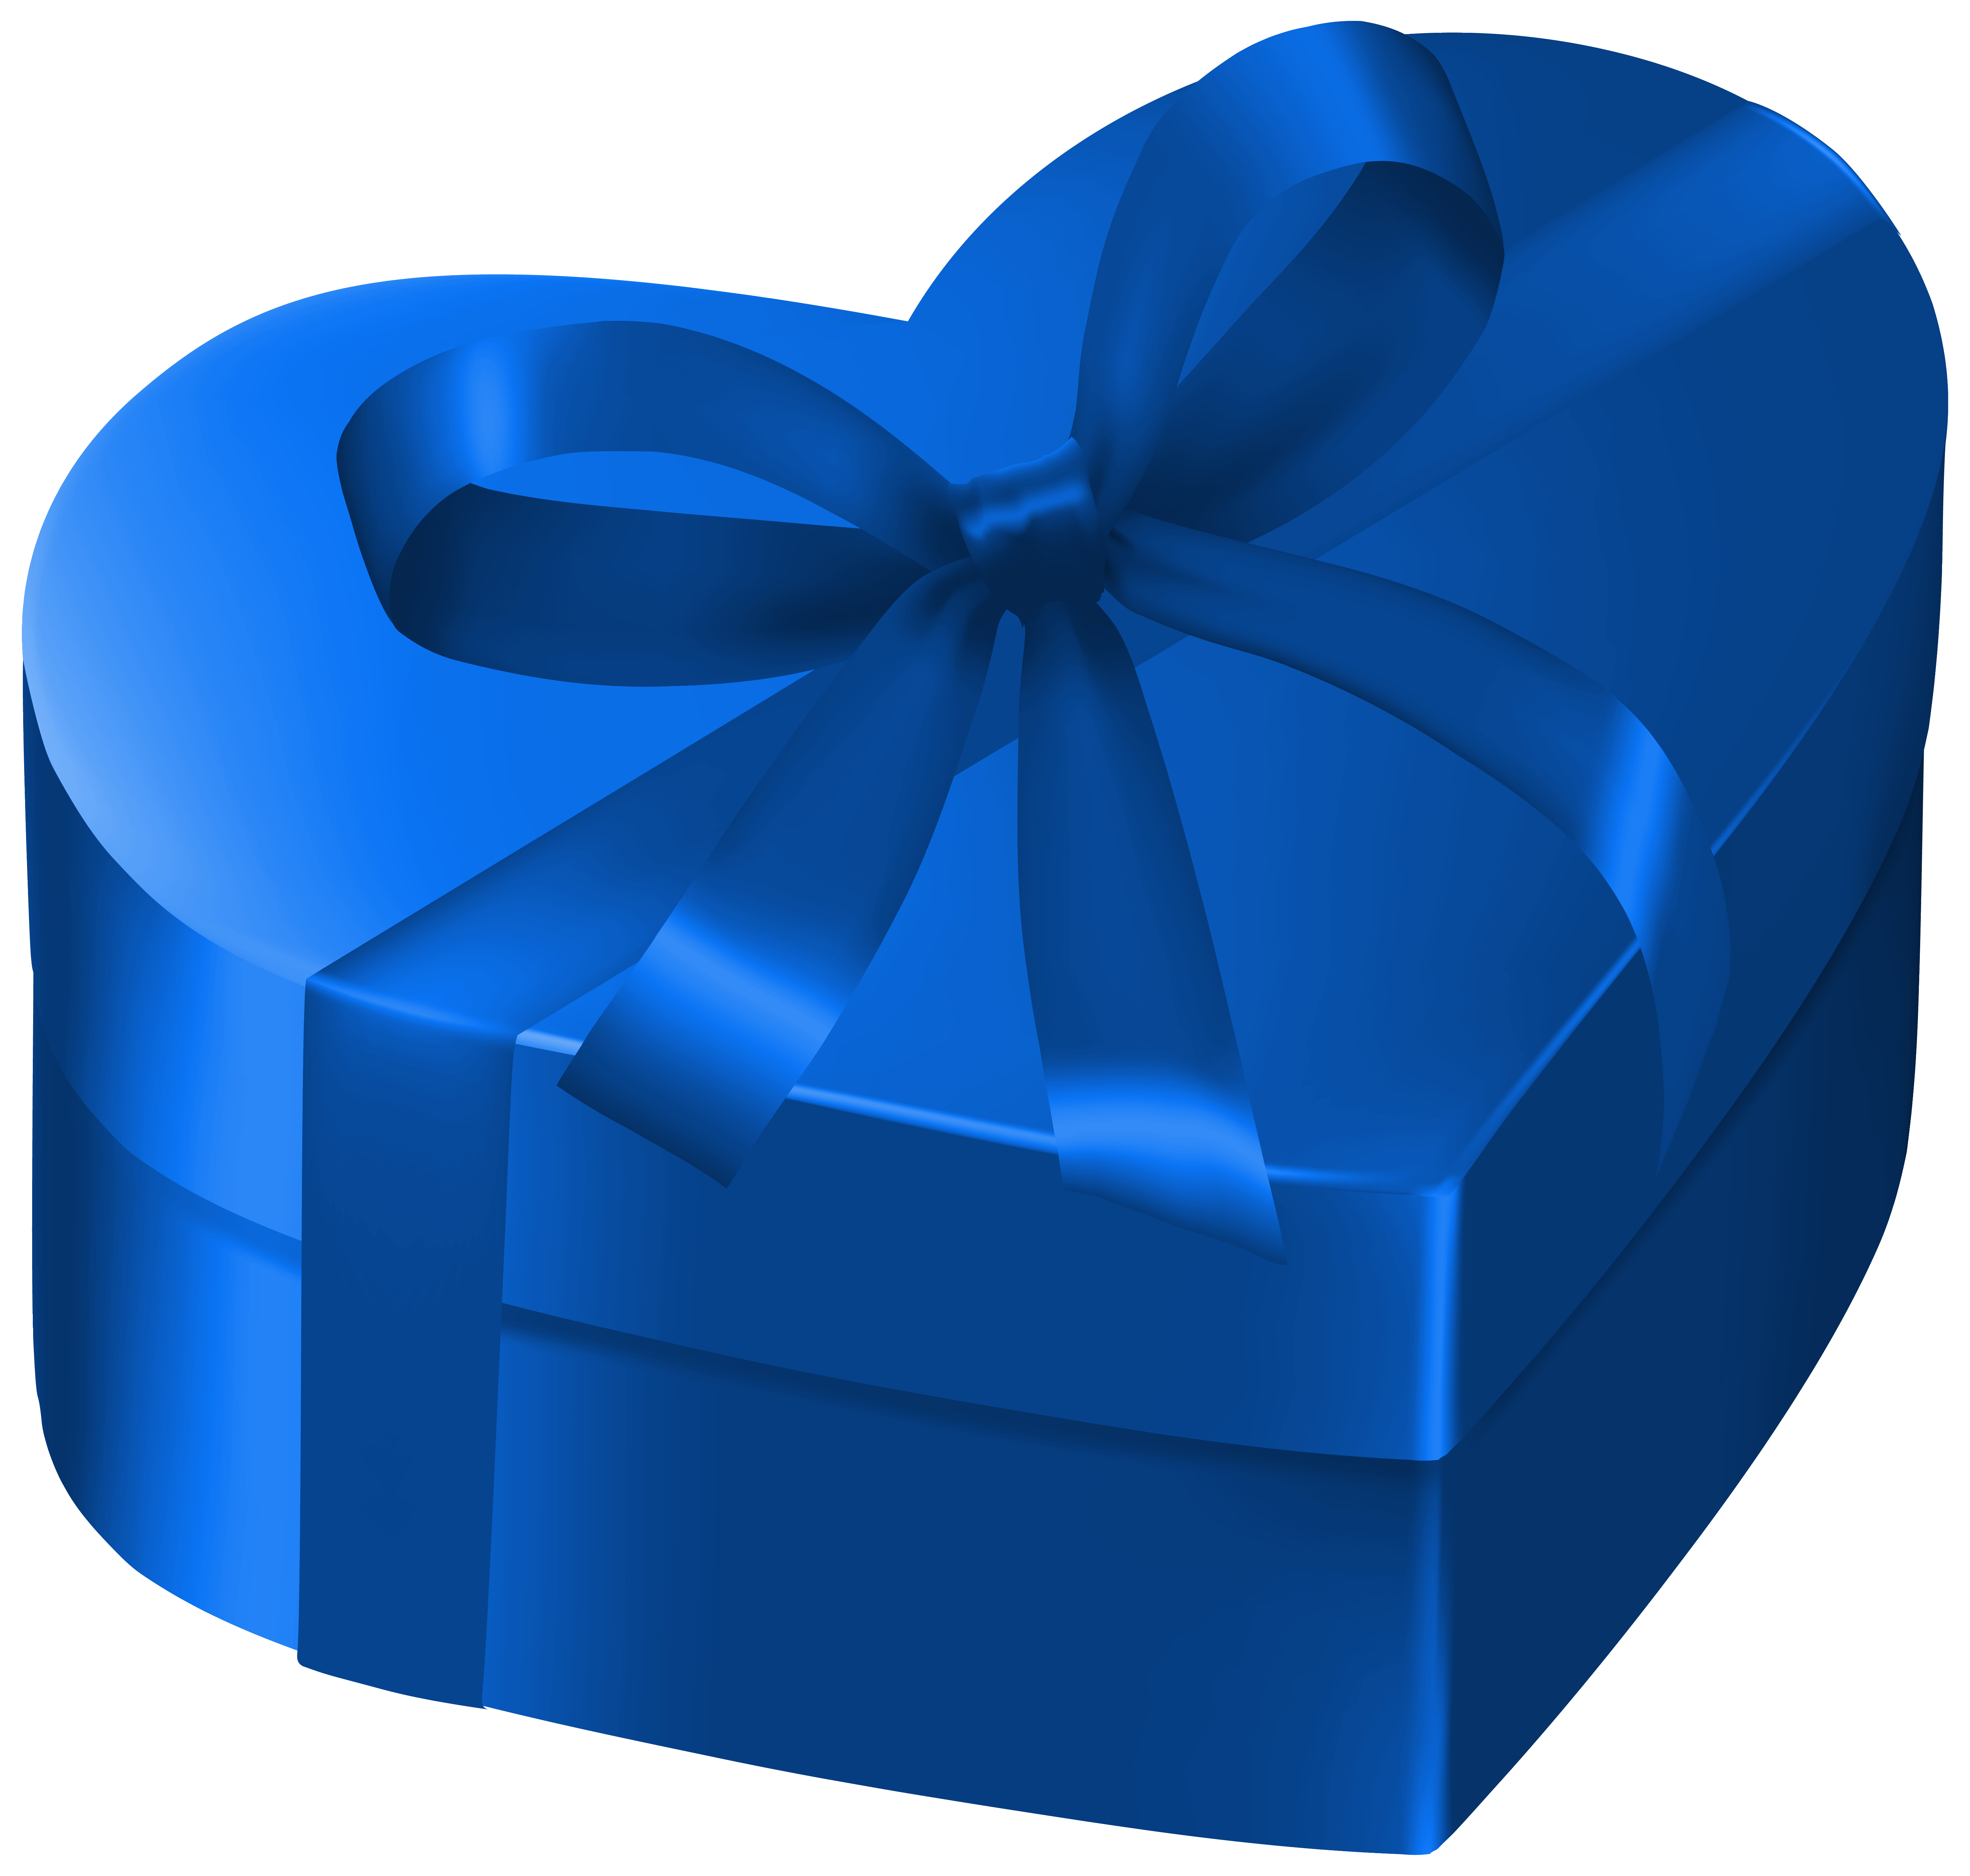 Blue box png. Heart gift clipart image